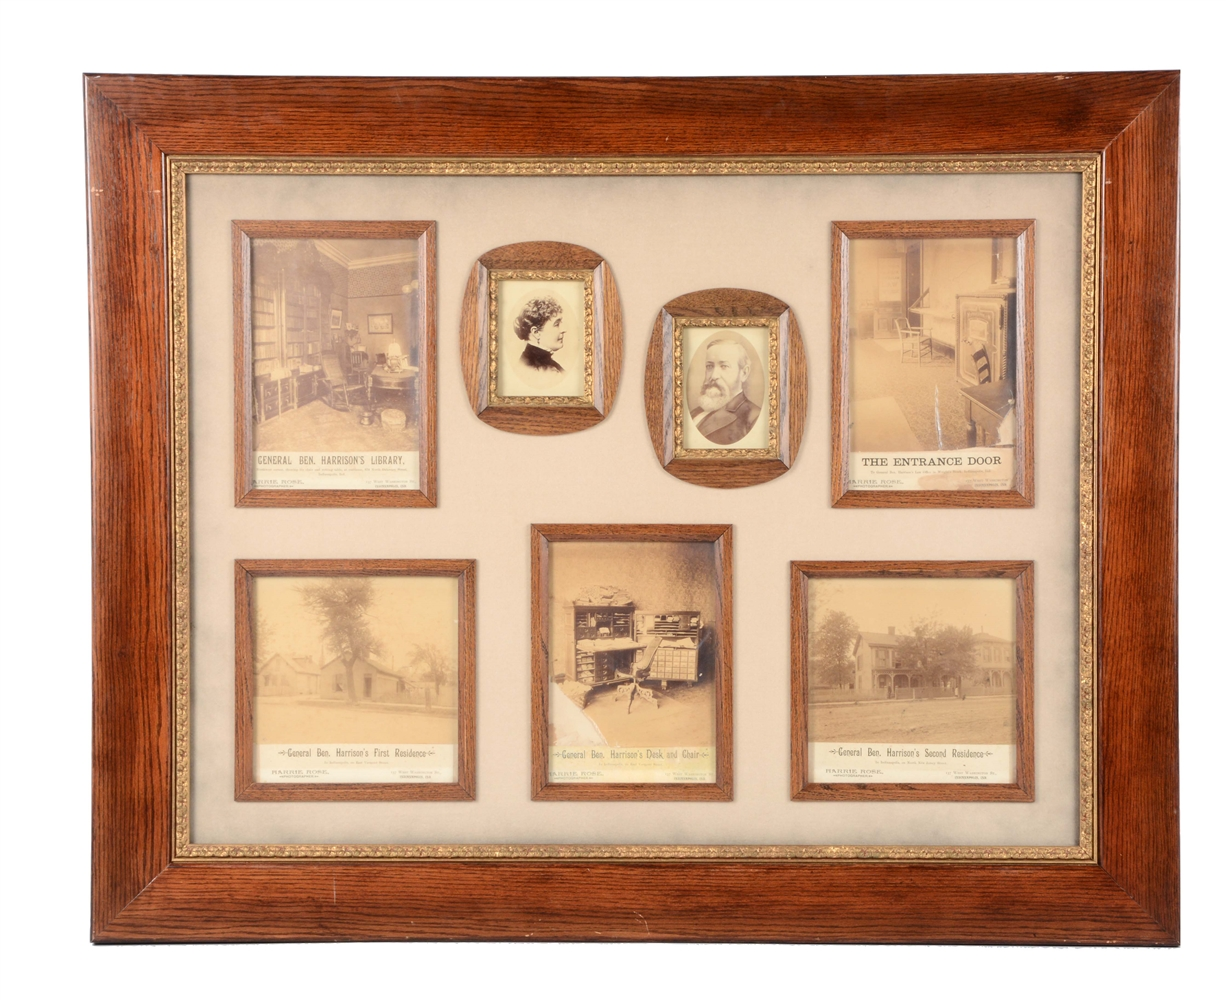 General Benjamin Harrison Framed Photos.